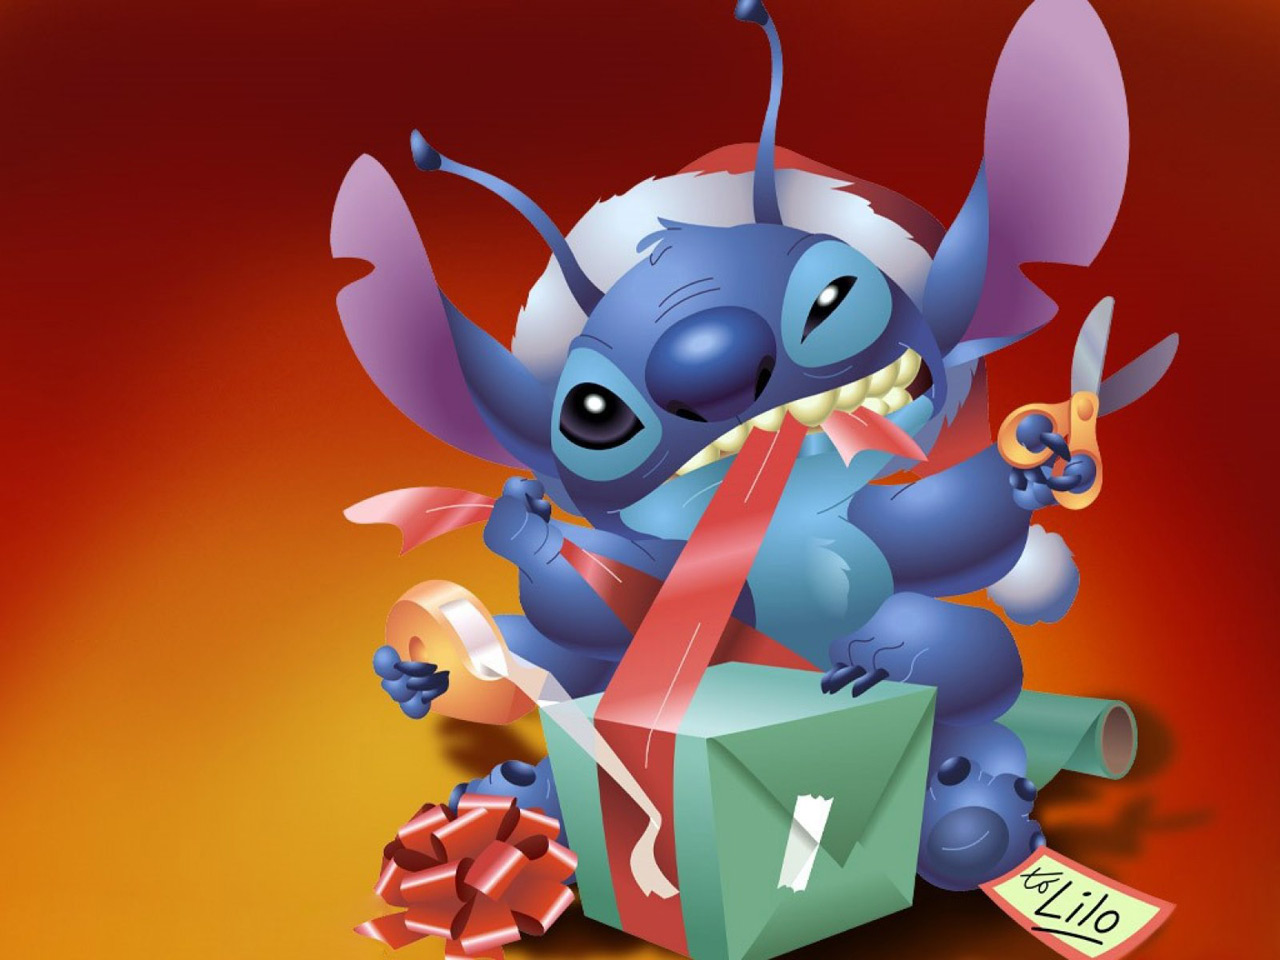 From Stitch to Lilo Christmas Present computer desktop wallpapers 1280x960